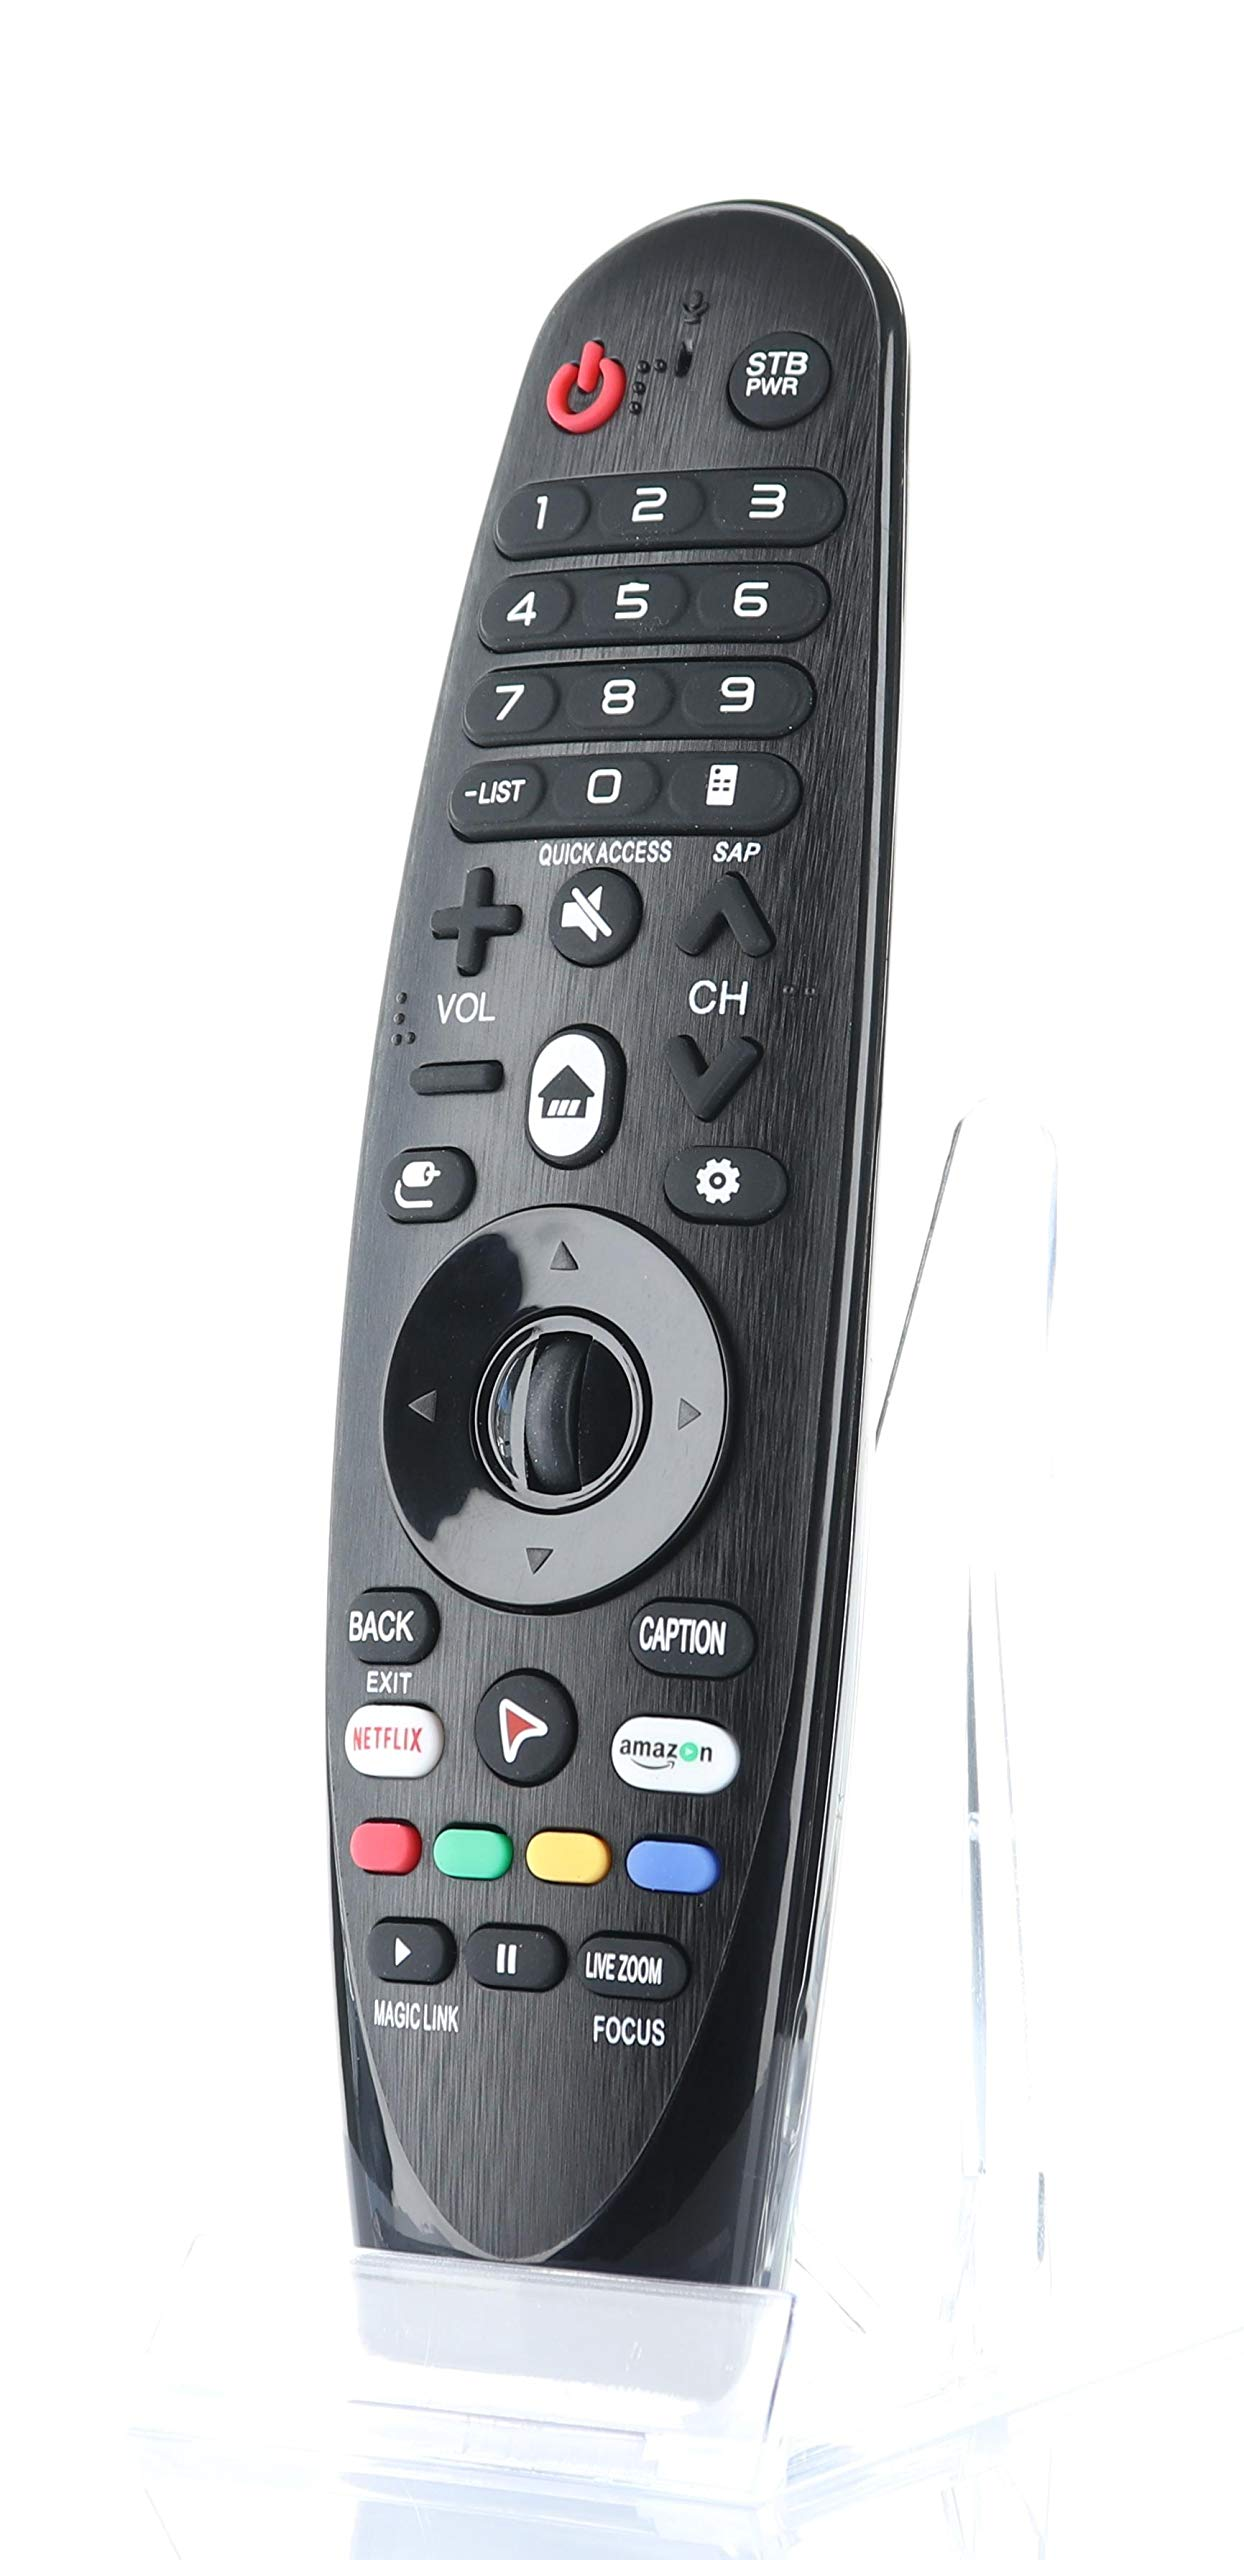 LG Replacement AN-MR600 Magic Remote with Pointer, Netflix, App Keys Replaces AN-MR600G. AN-MR650, AN-MR650G, ANMR650A, AN-MR700, AN-MR400, ANMR600, AN-MR650B, AN-MR19BA, AN-MR18BA, More